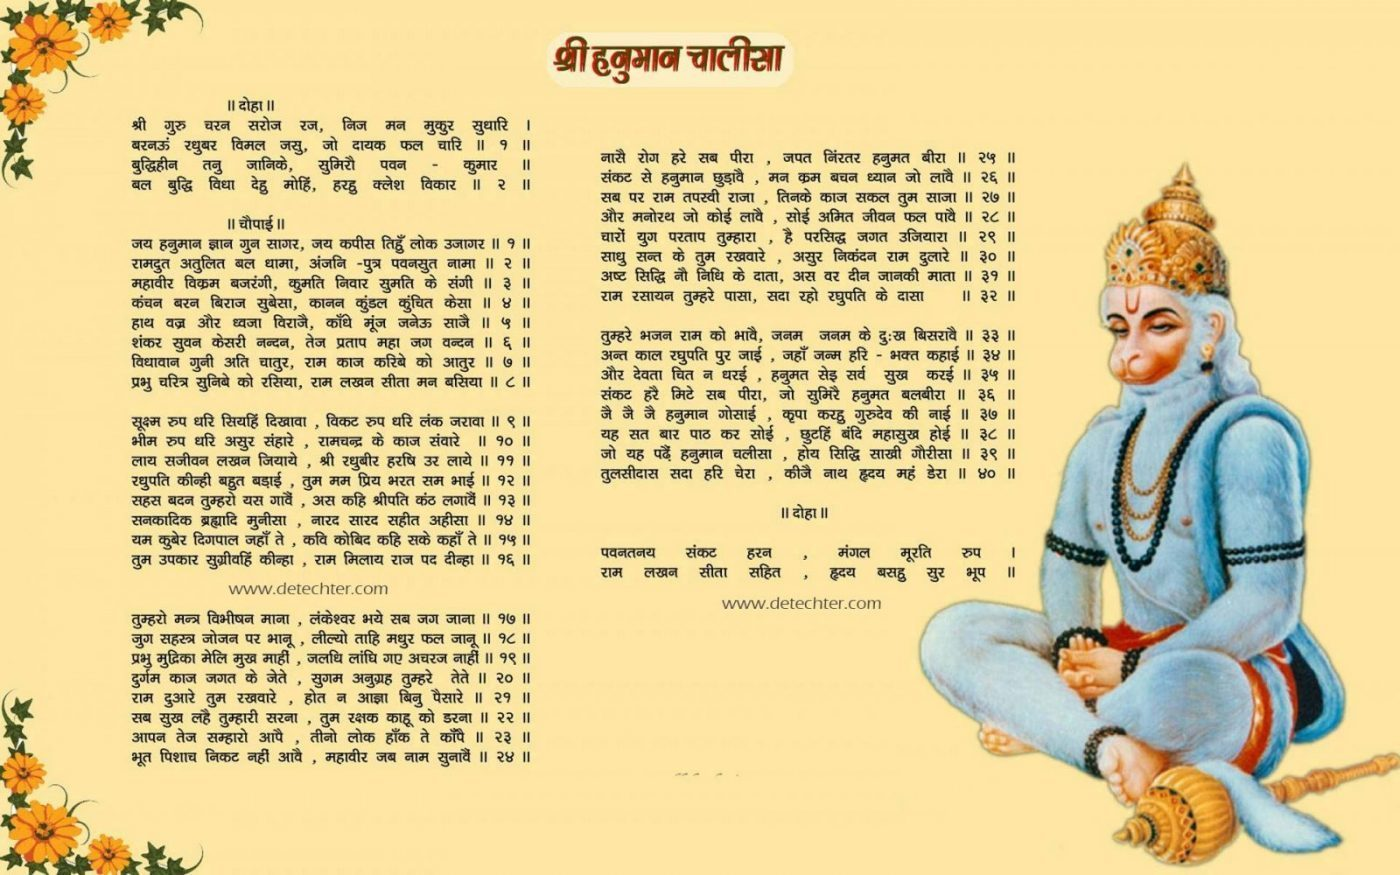 Hanuman Chalisa Meaning Lyrics in Hindi English Sanskrit